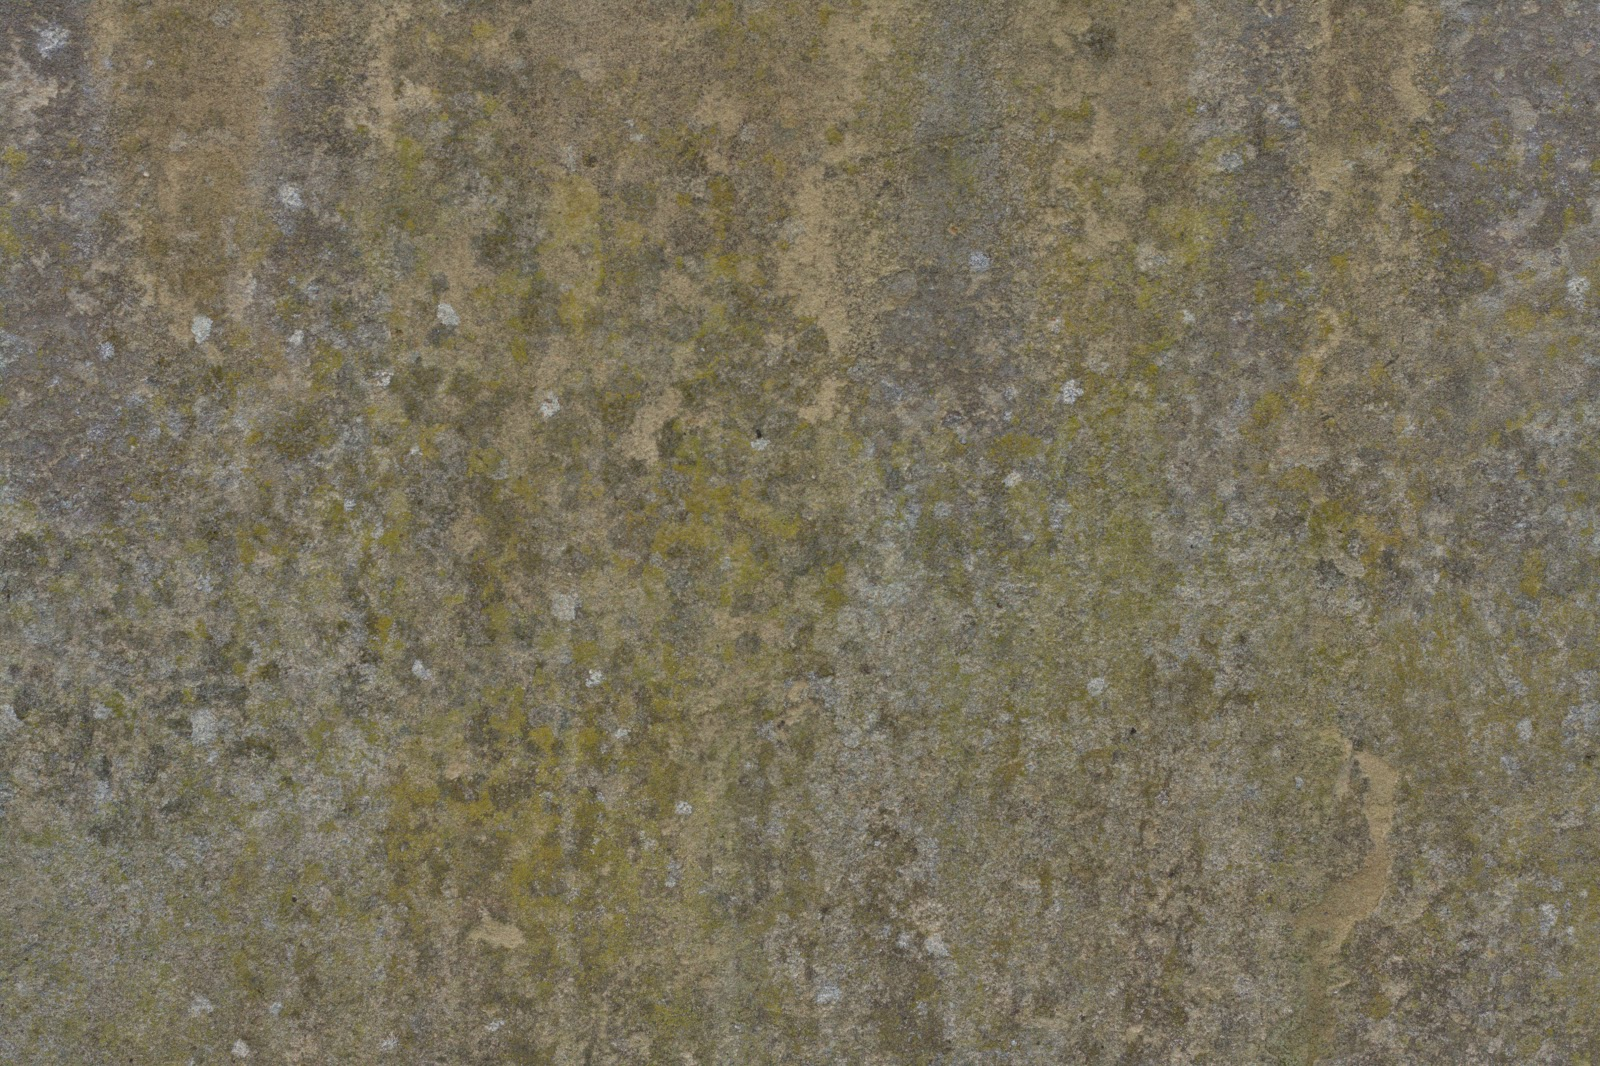 Stucco wall grunge feb_2015_2 texture 4770x3178